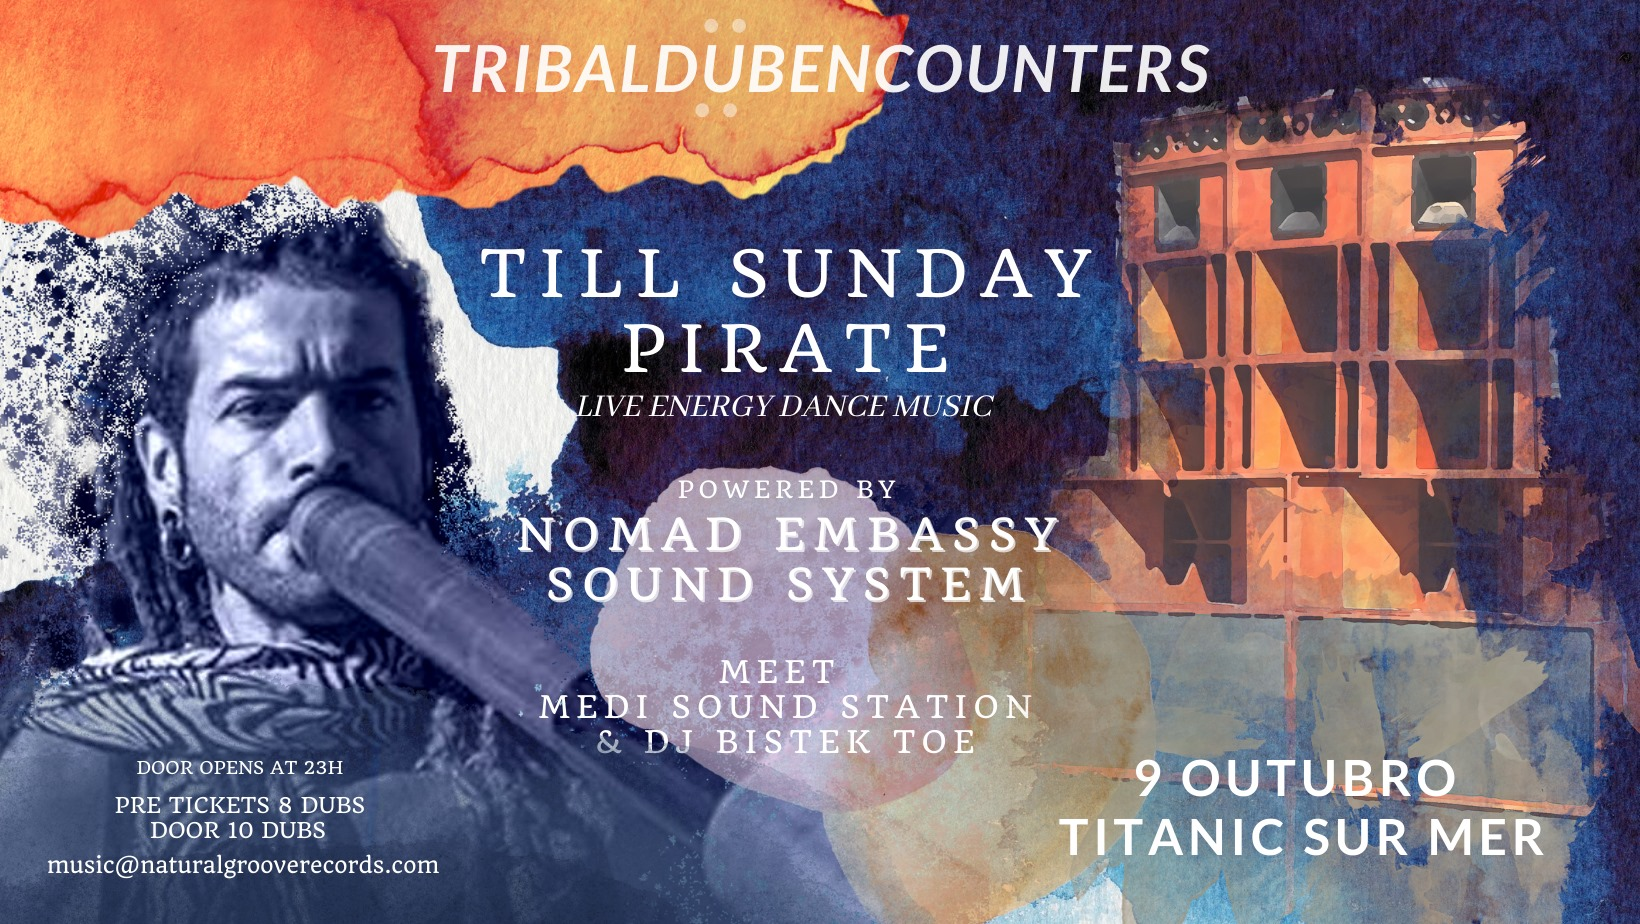 TRIBAL DUB ENCOUNTERS POWERED BY NOMAD EMBASSY SOUND SYSTEM